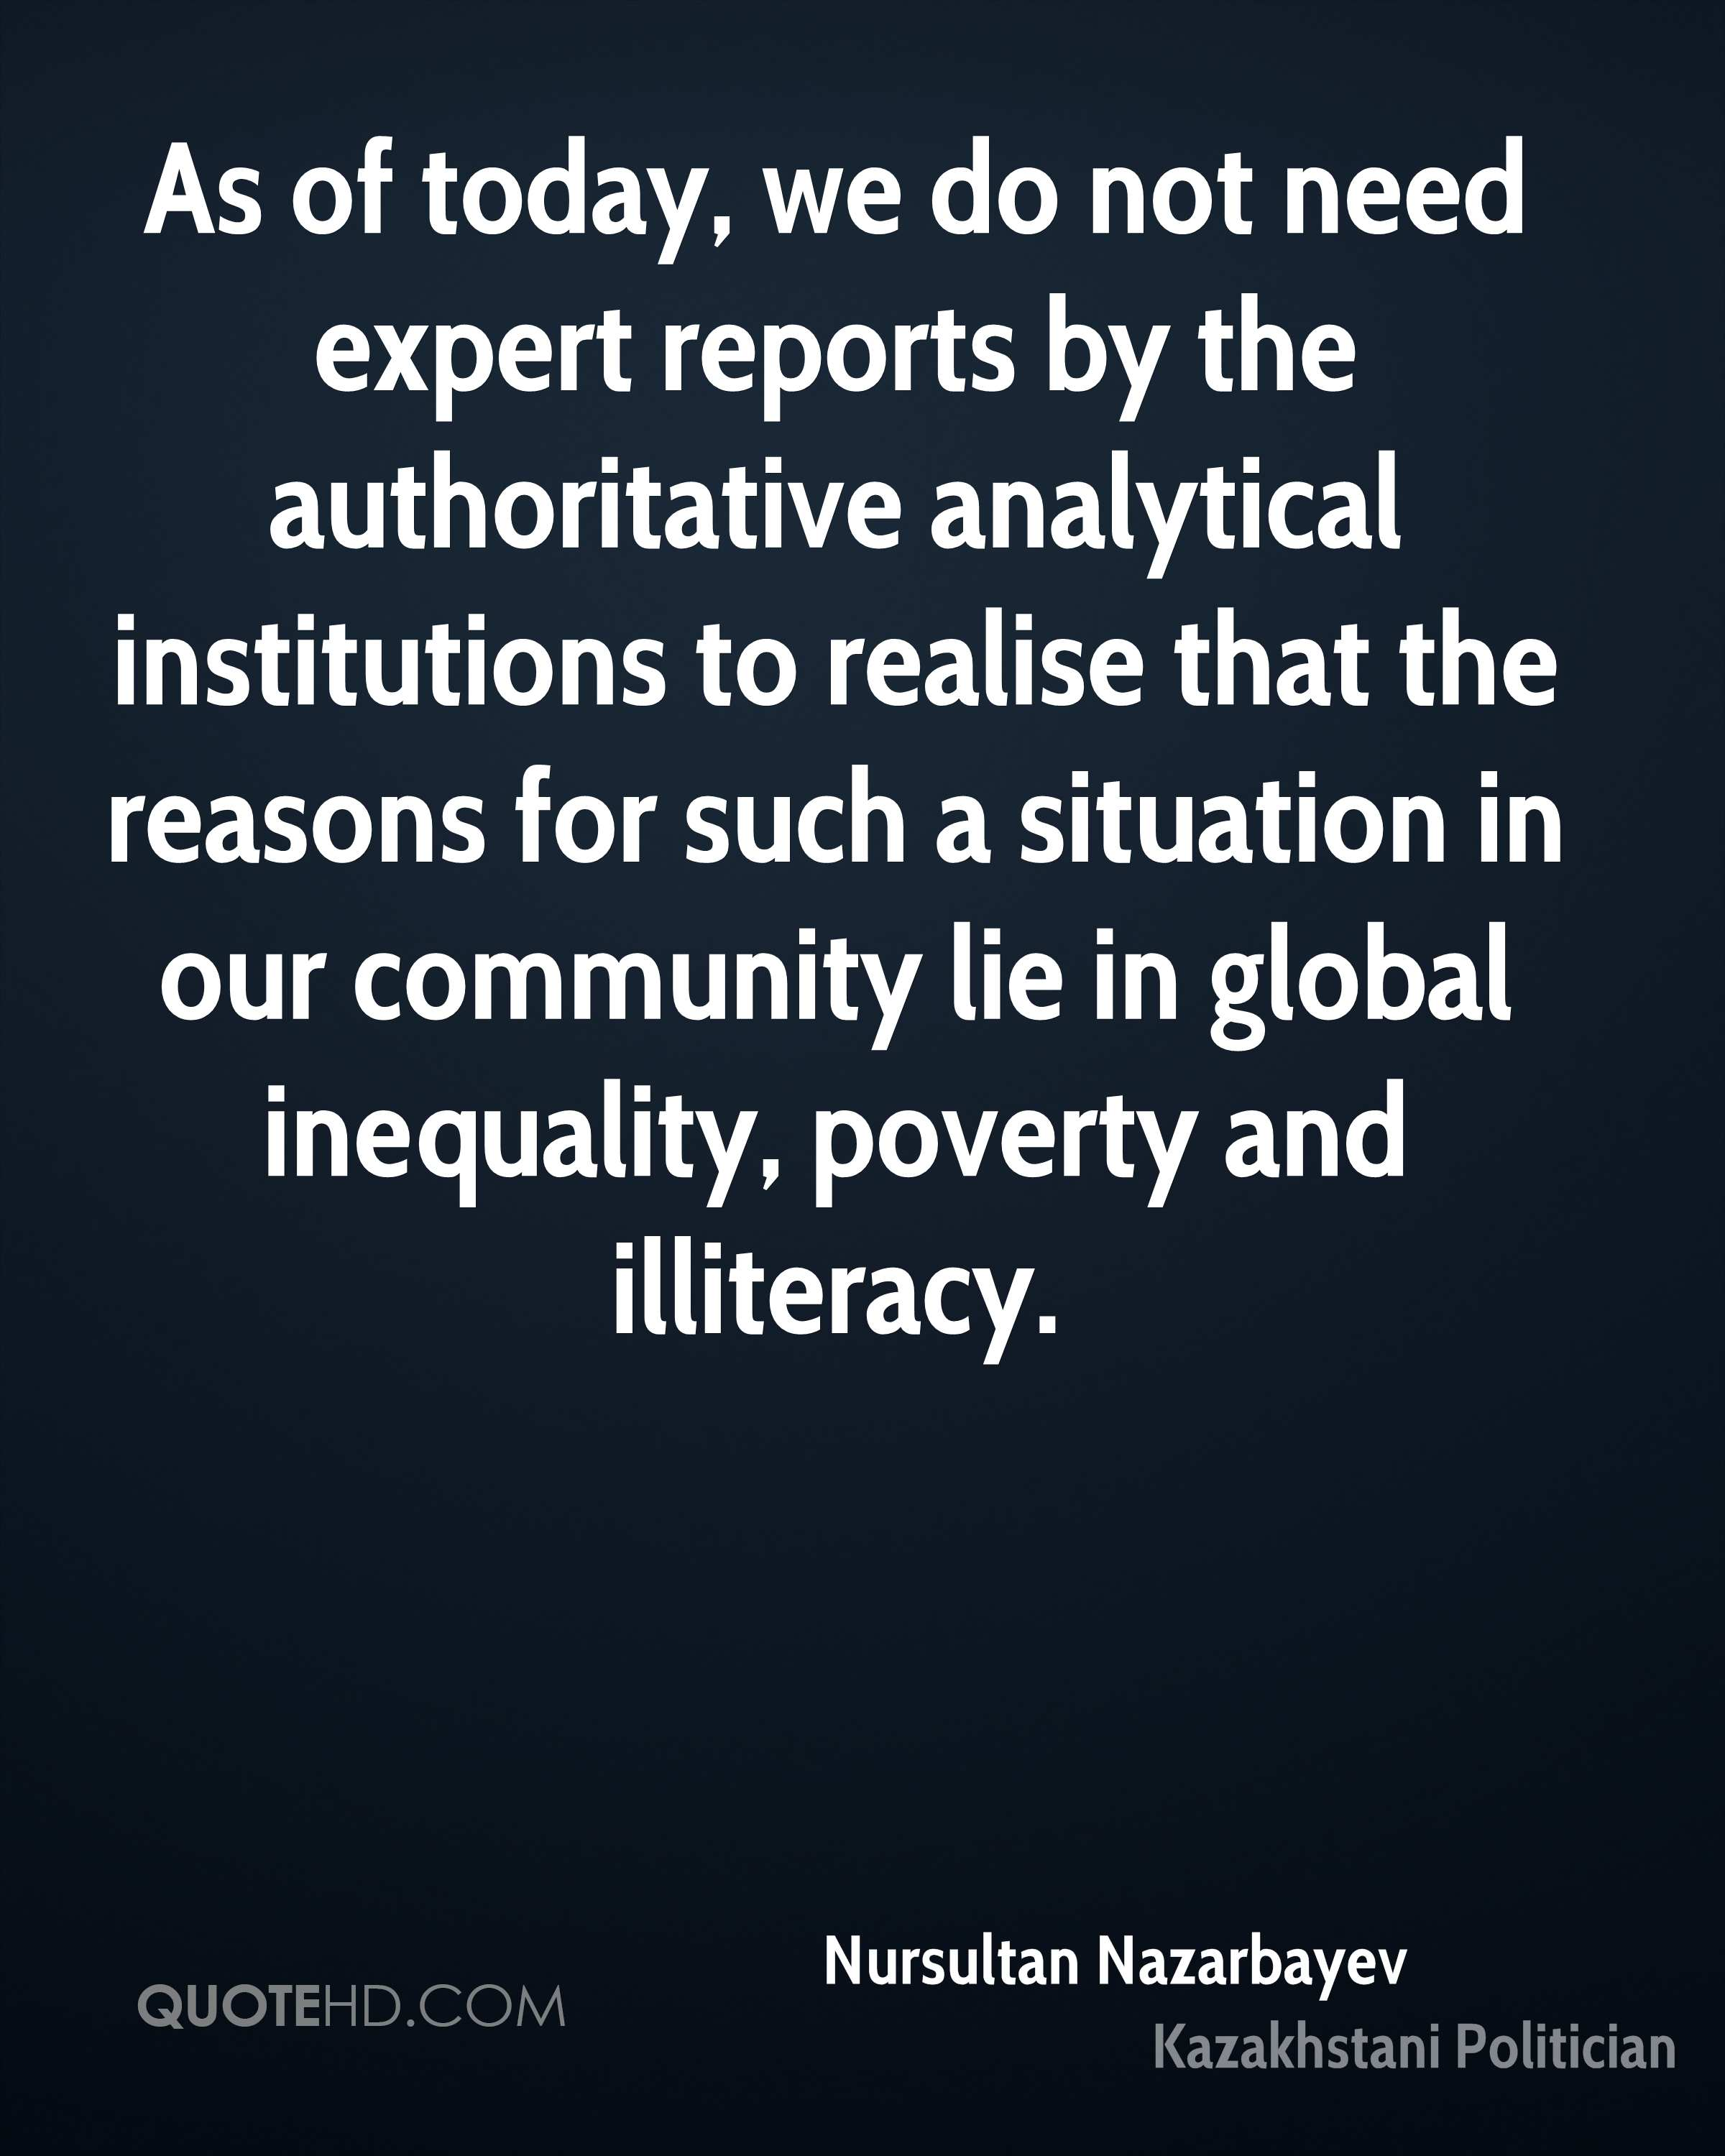 As of today, we do not need expert reports by the authoritative analytical institutions to realise that the reasons for such a situation in our community lie in global inequality, poverty and illiteracy.